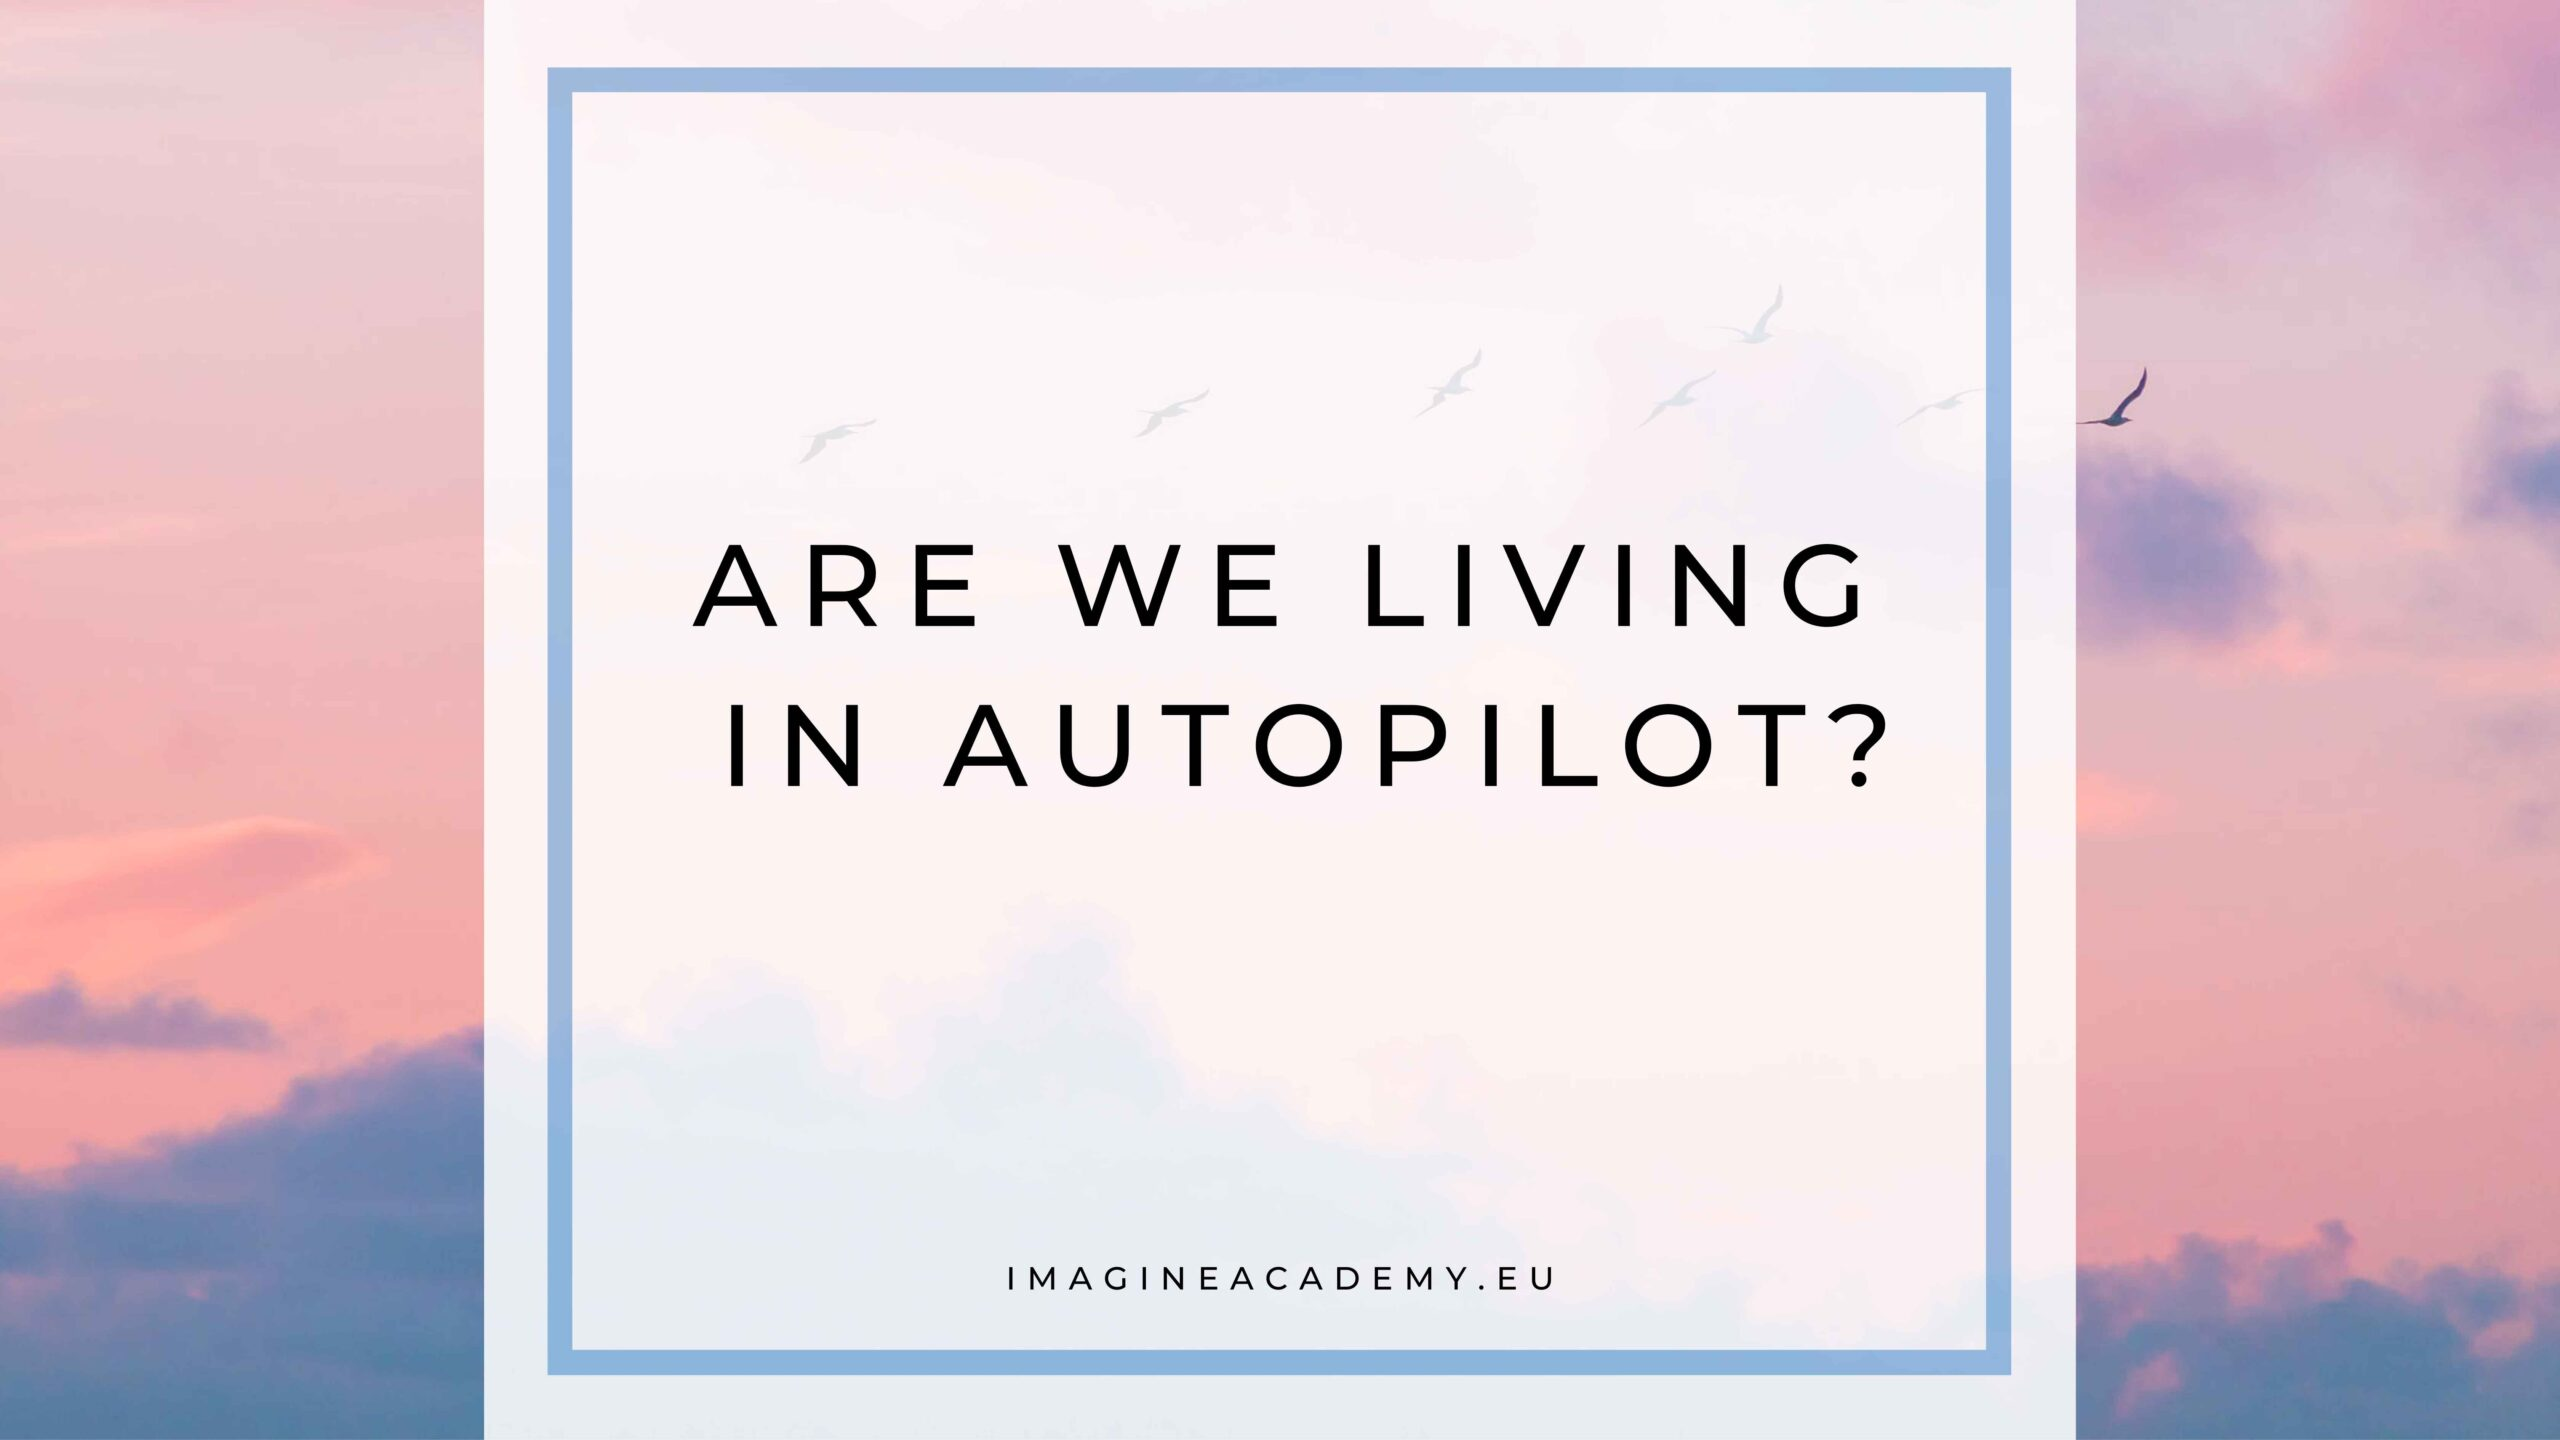 Are we living in autopilot?